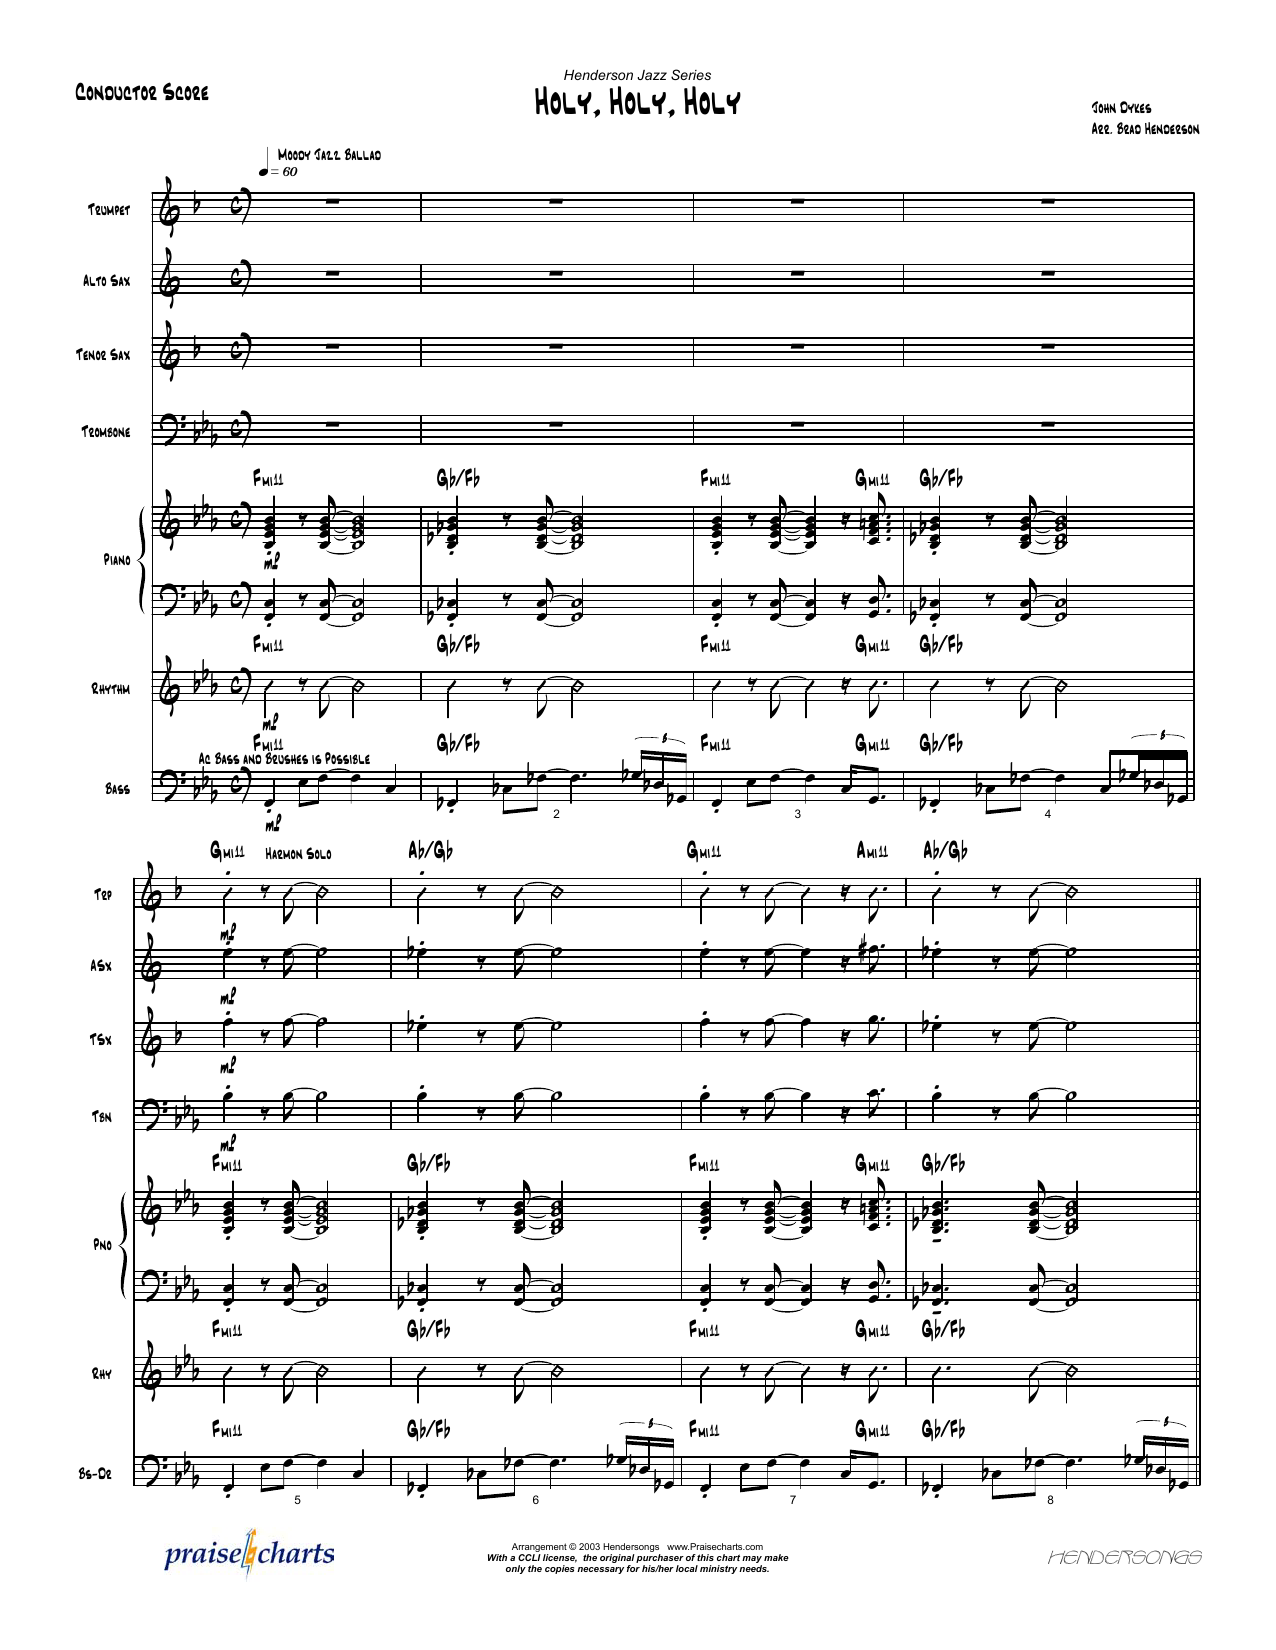 Brad Henderson - Holy Holy Holy - Orchestration